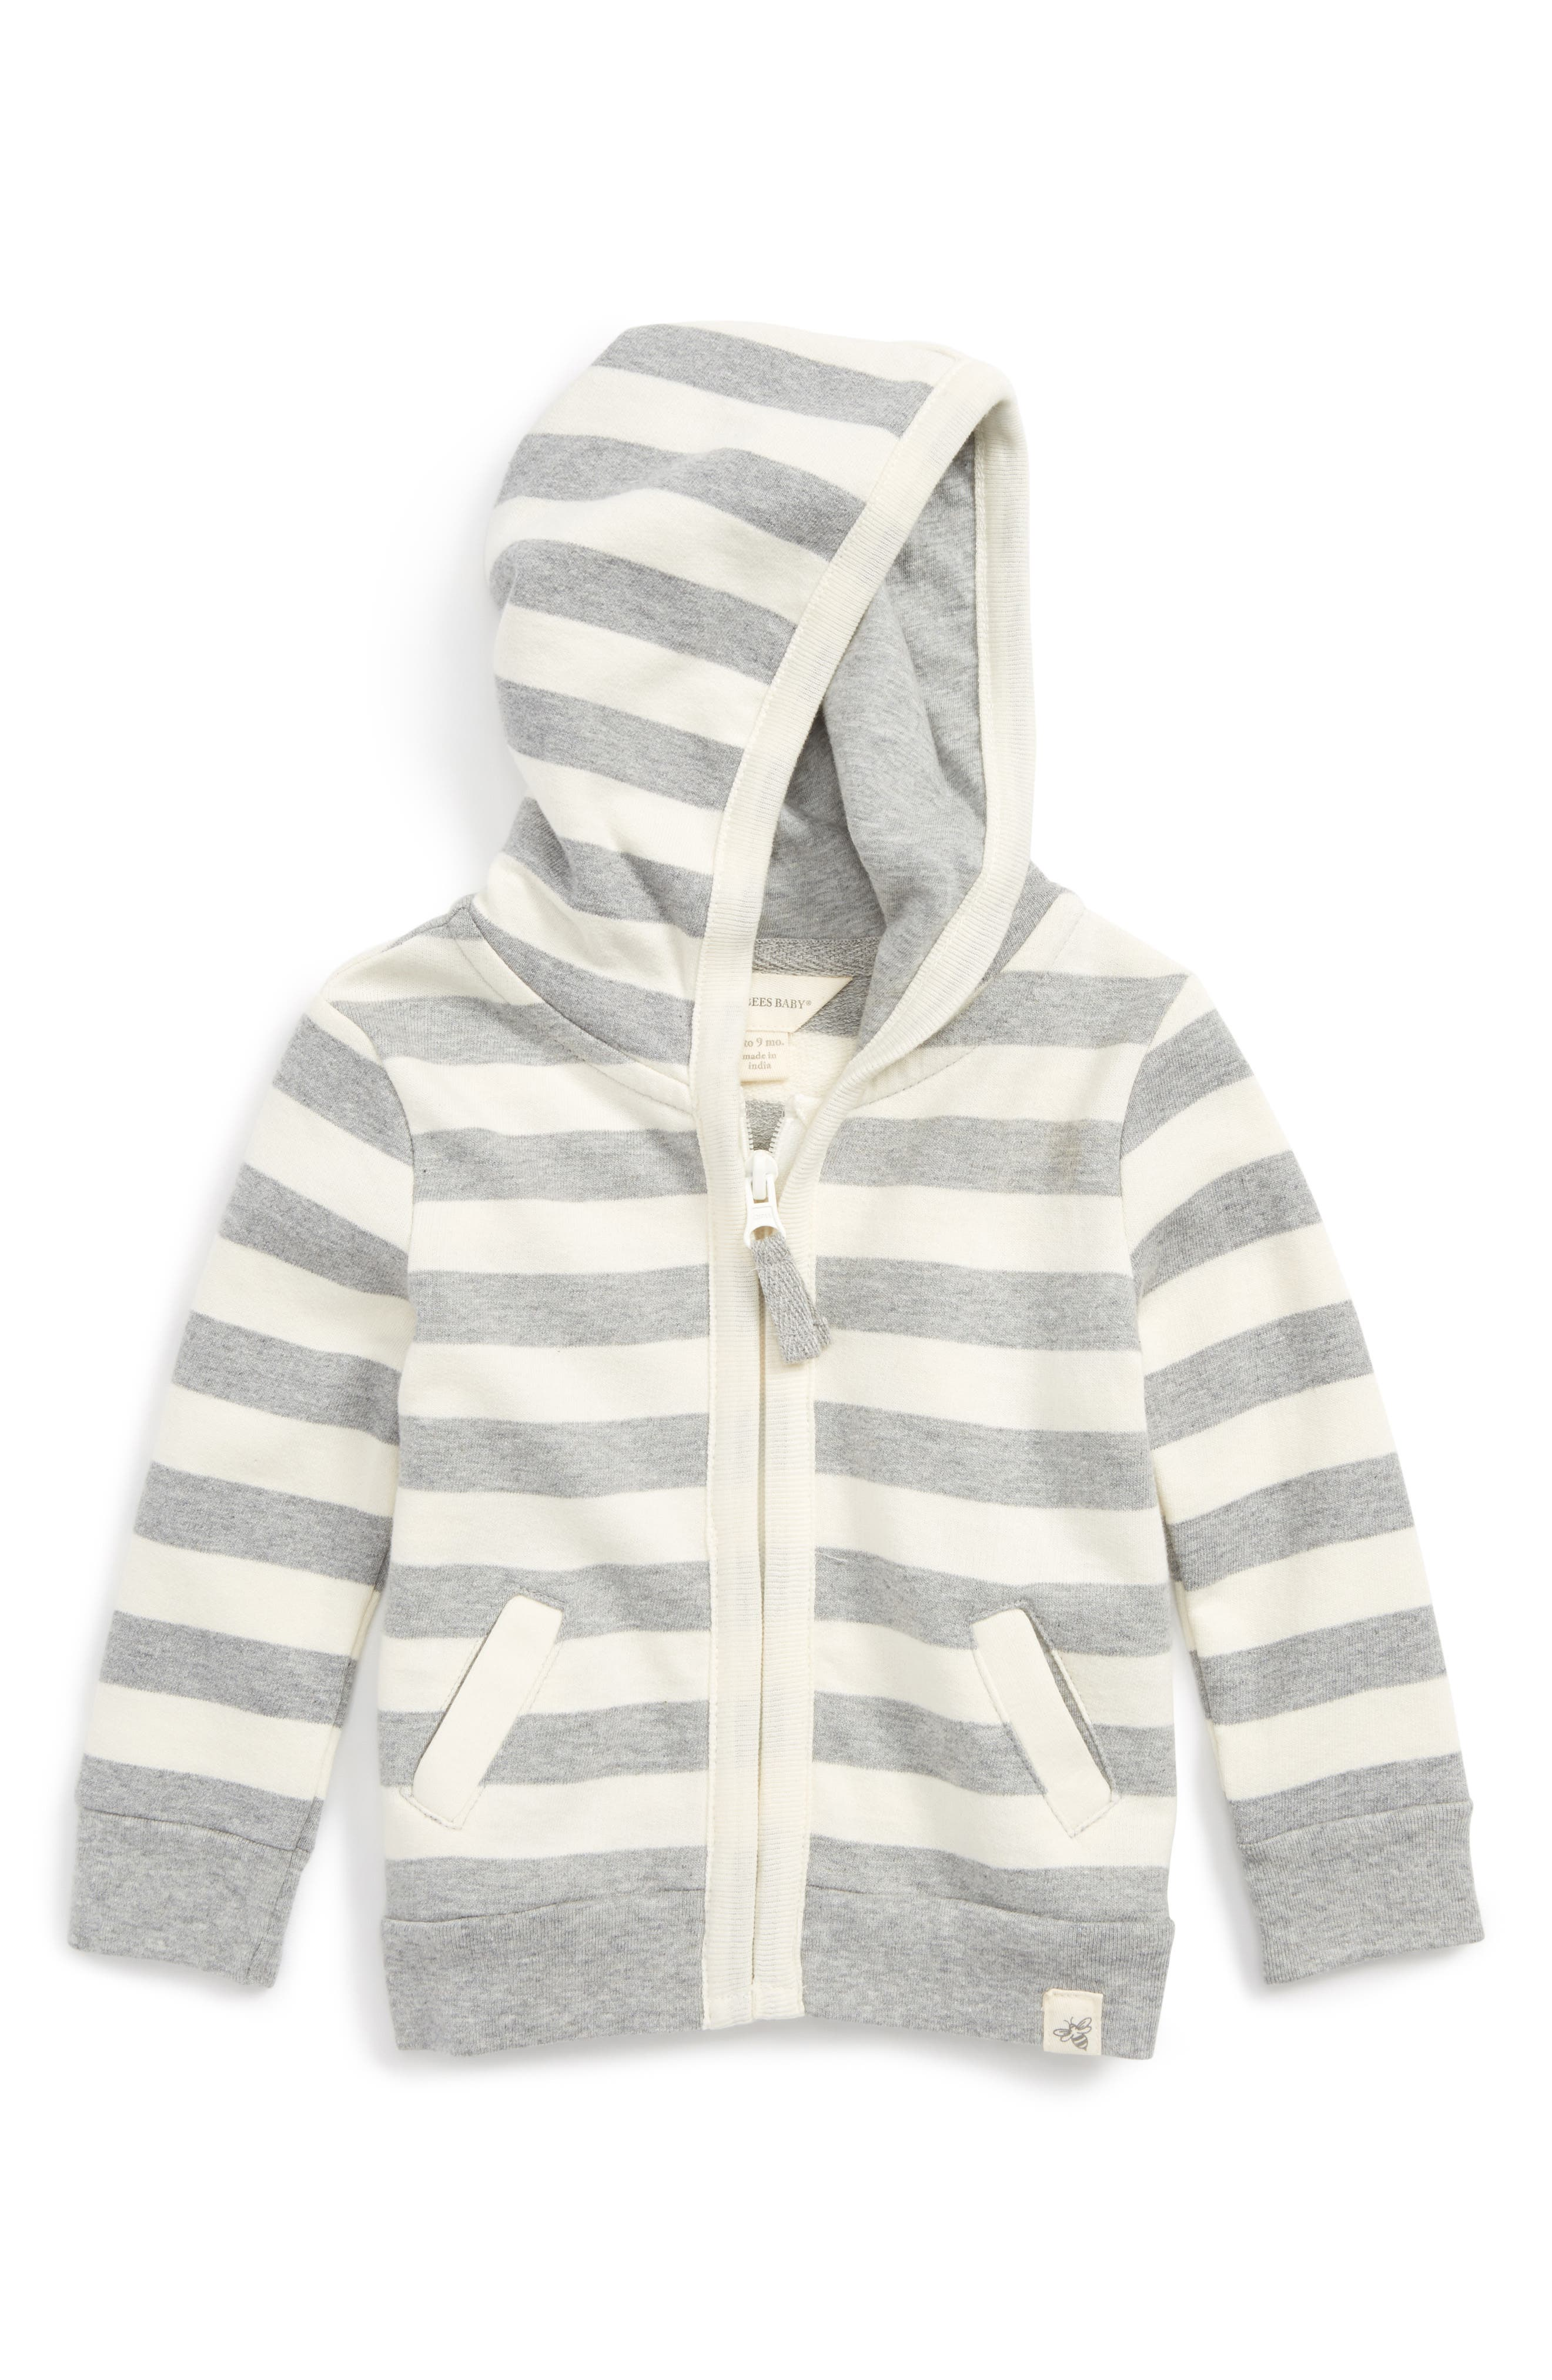 Burt's Bees French Terry Organic Cotton Hoodie (Baby)